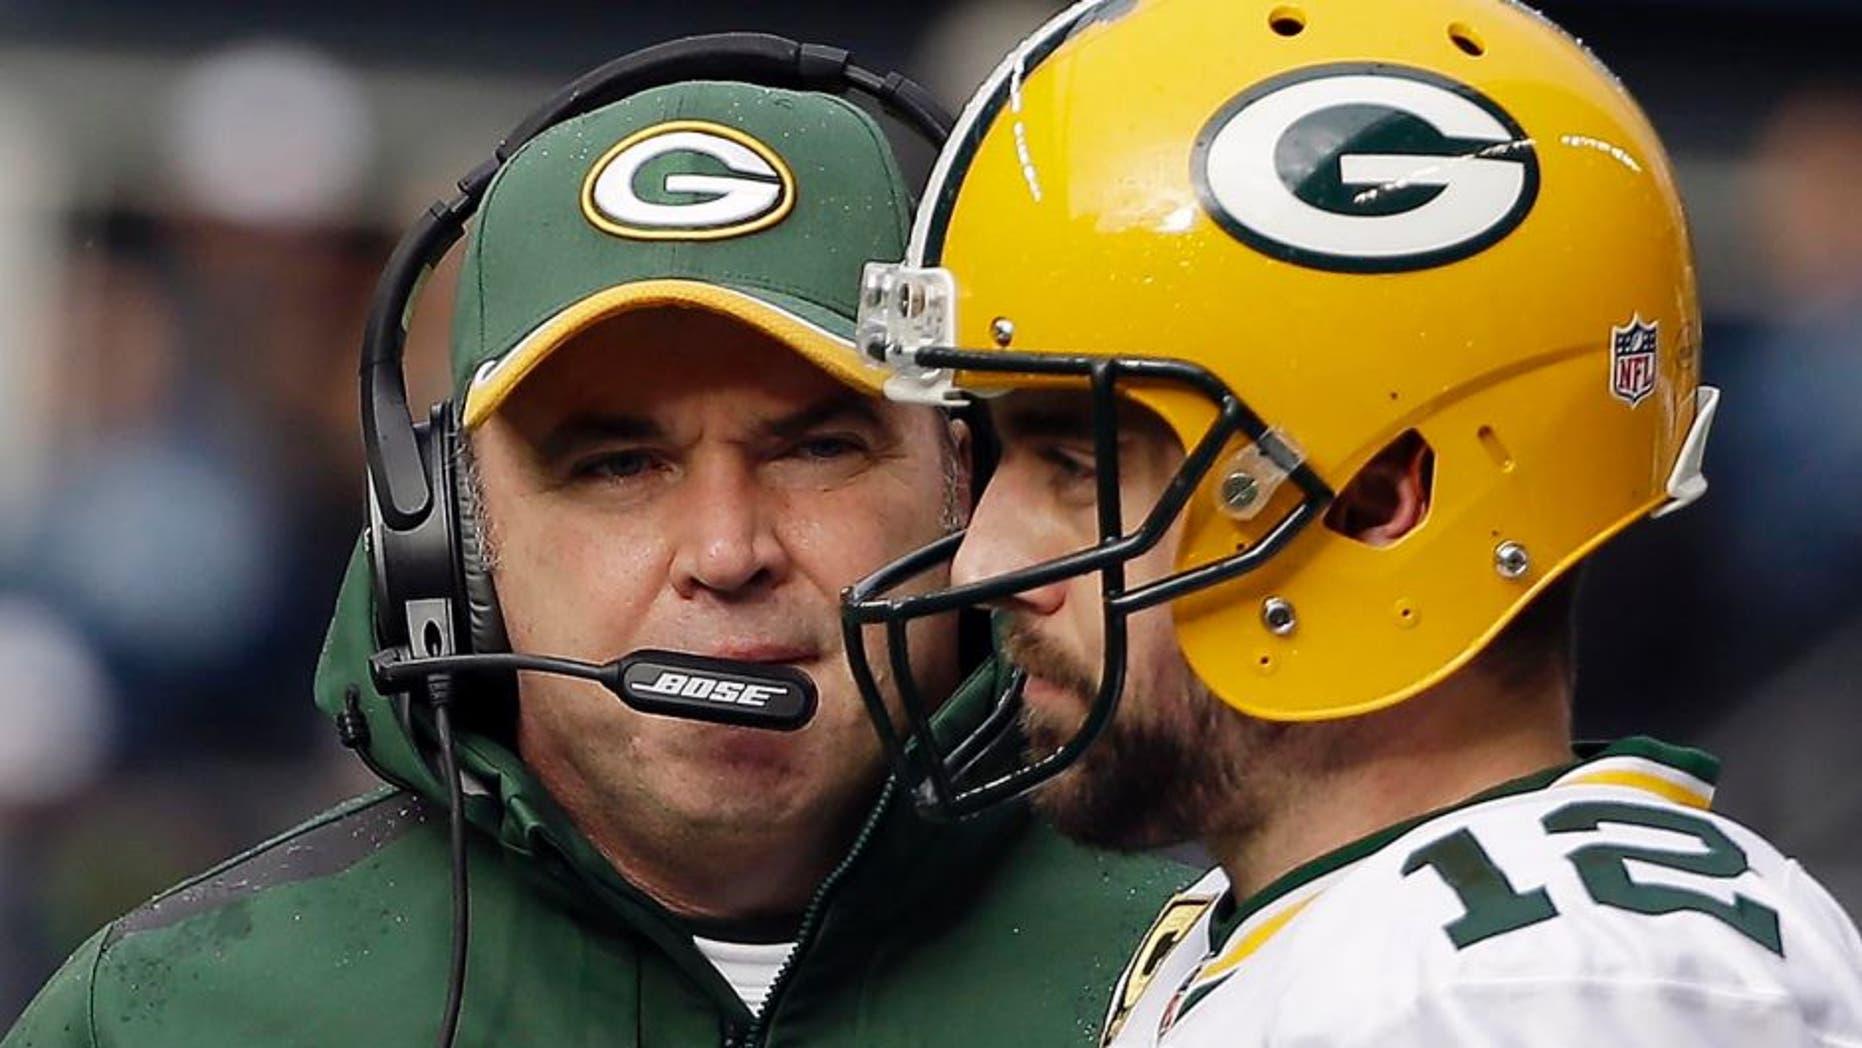 Sunday, January 18: Green Bay Packers head coach Mike McCarthy (left) talks to quarterback Aaron Rodgers during the first half of the NFC championship game in Seattle.